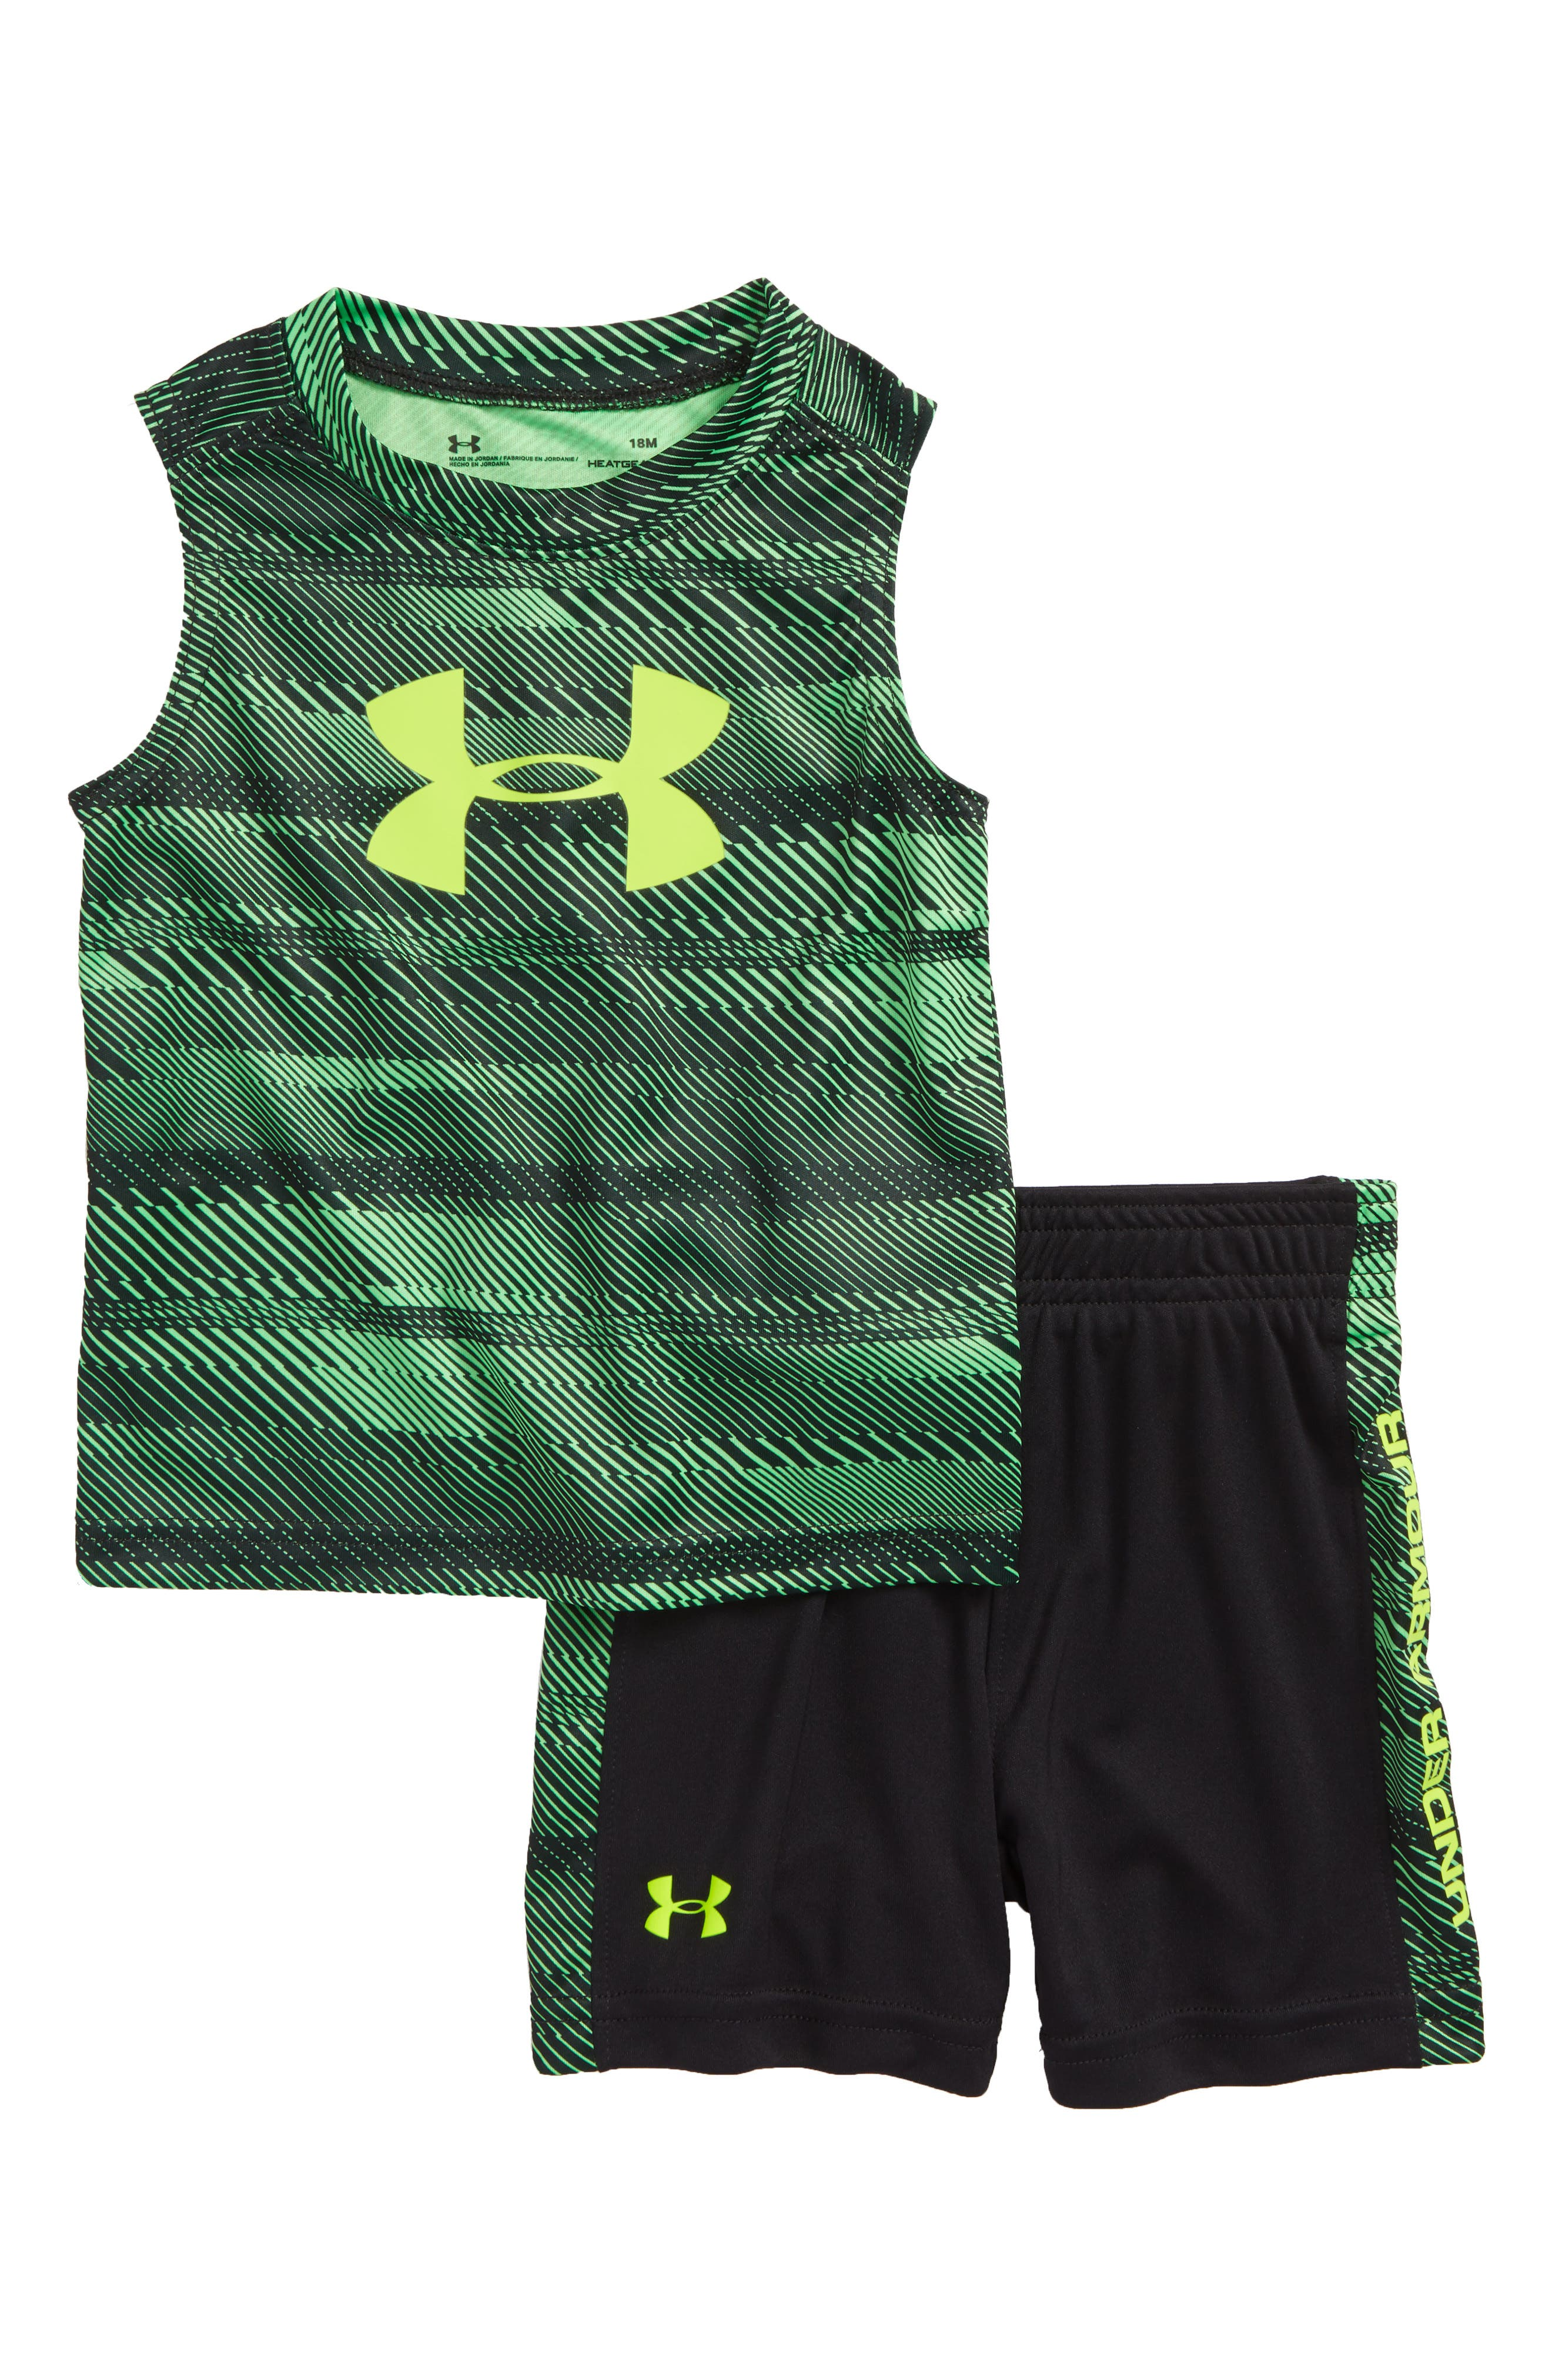 Main Image - Under Armour Speed Lines Graphic Tank & Shorts Set (Baby Boys)